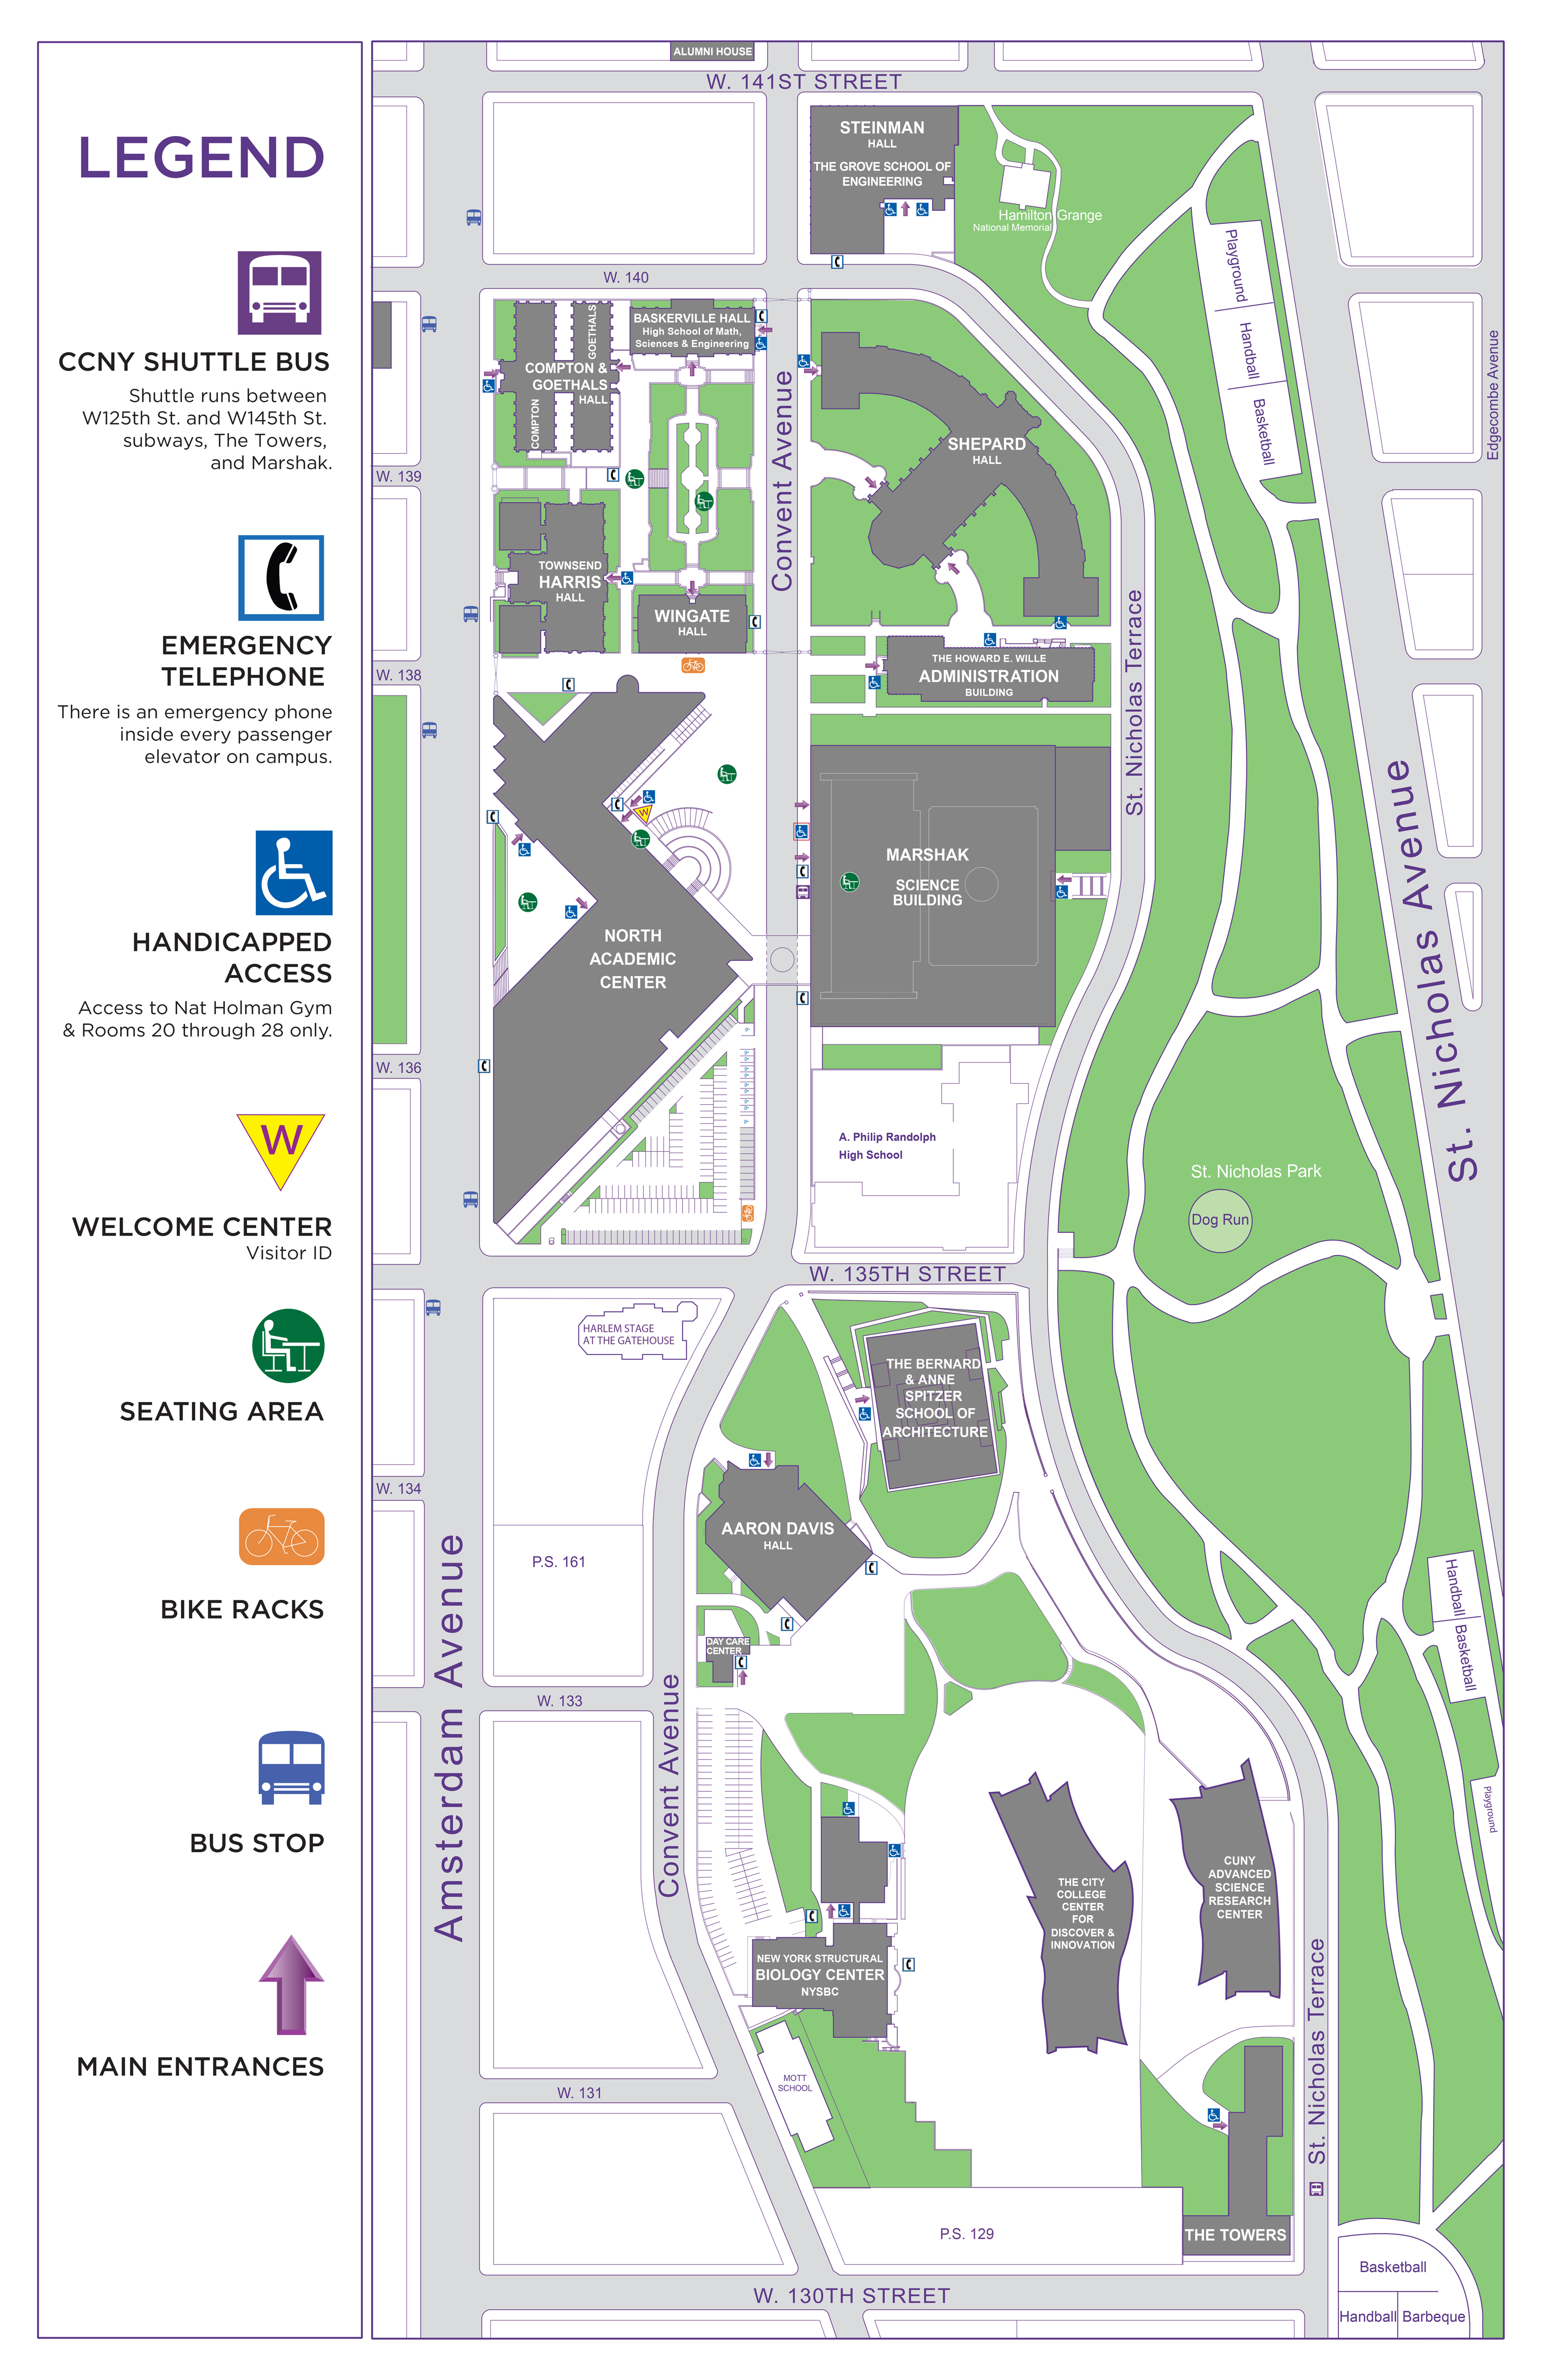 CCNY Campus Map | The City College of New York